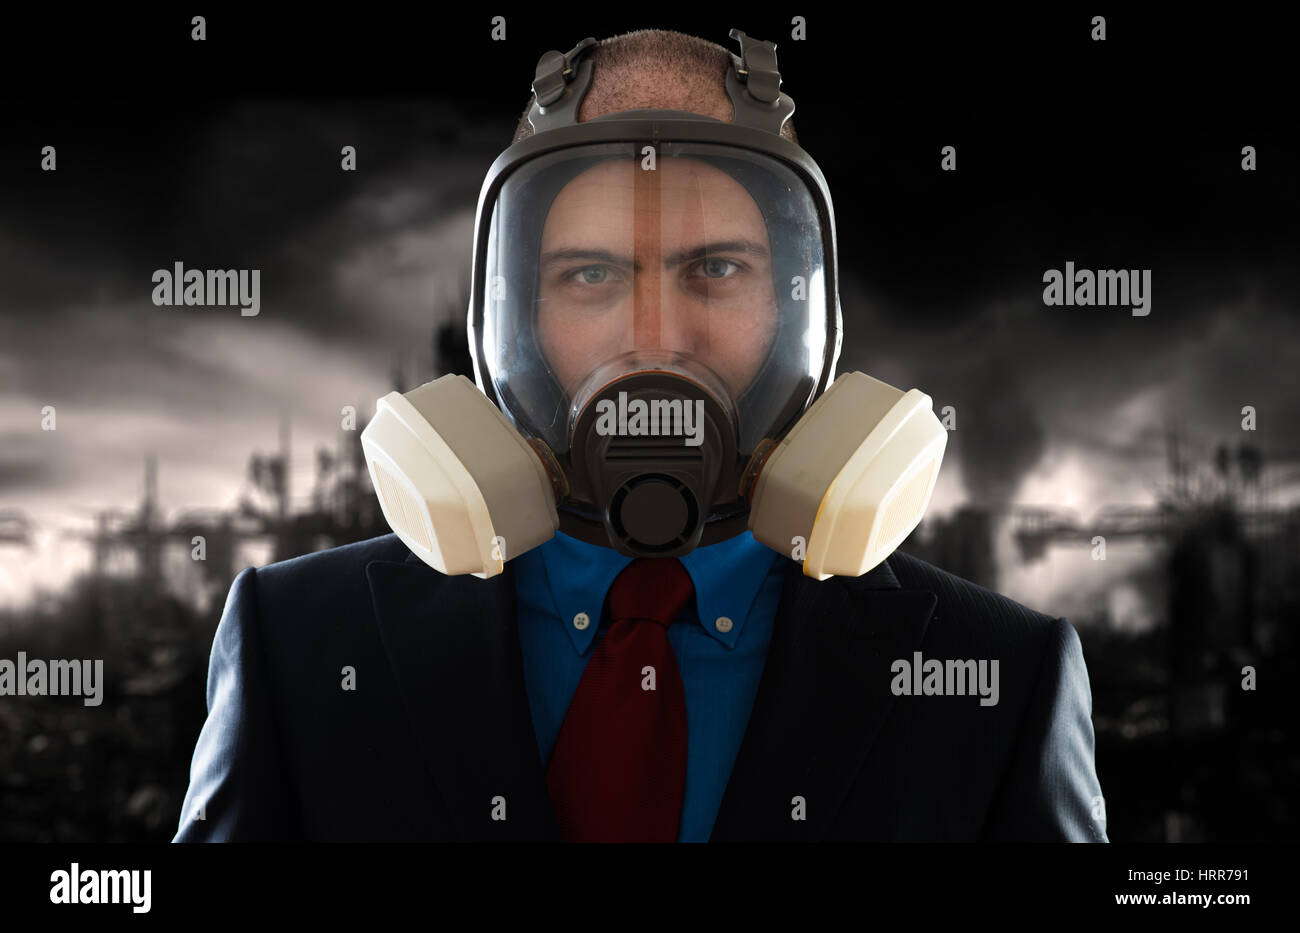 Man with mask in a polluted envirement - Stock Image